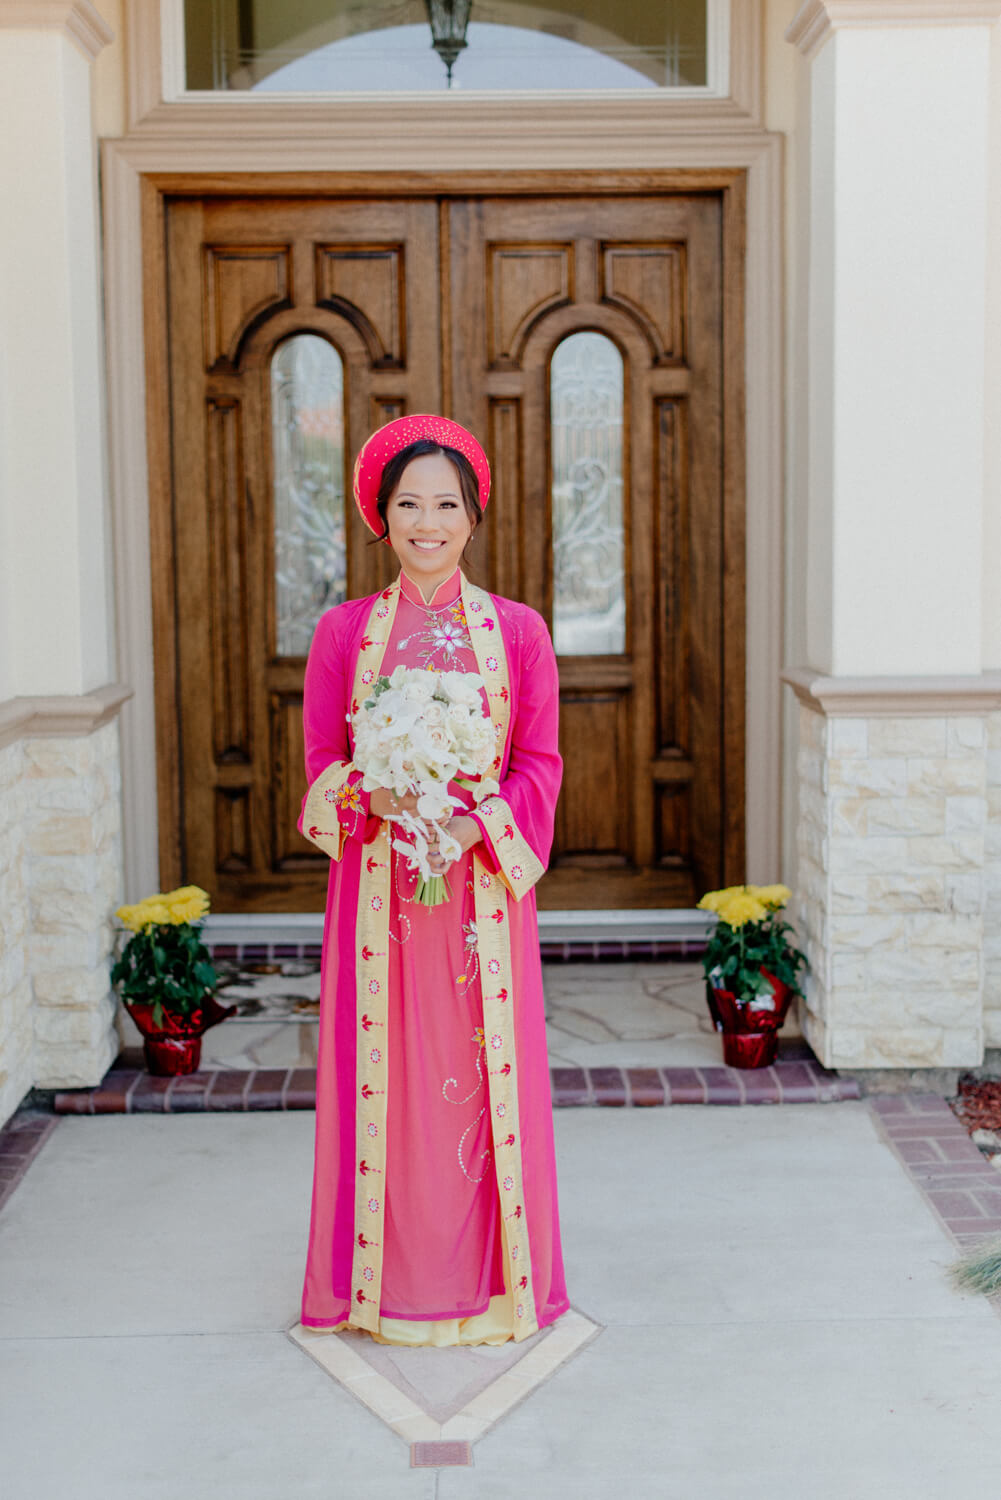 Vietnamese wedding. Old Traditions meet new age.